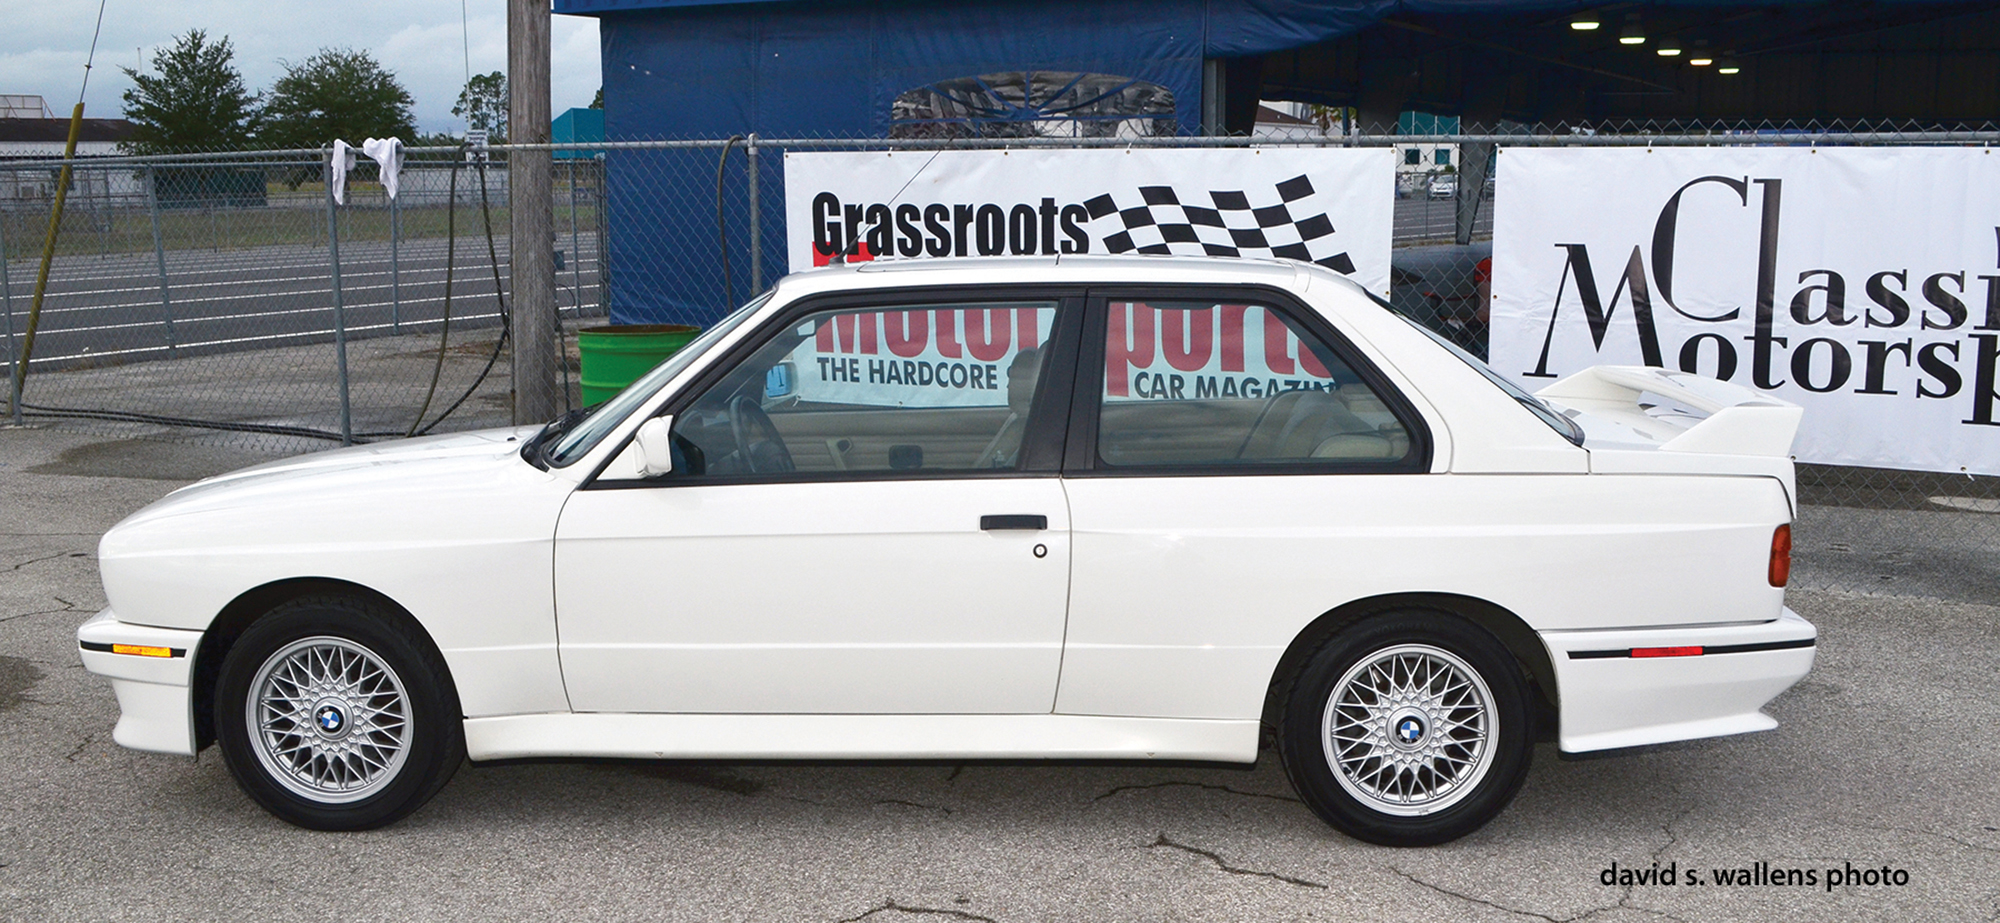 Max Profit Using Ebay Motors To Sell Your Car Articles Grassroots Motorsports